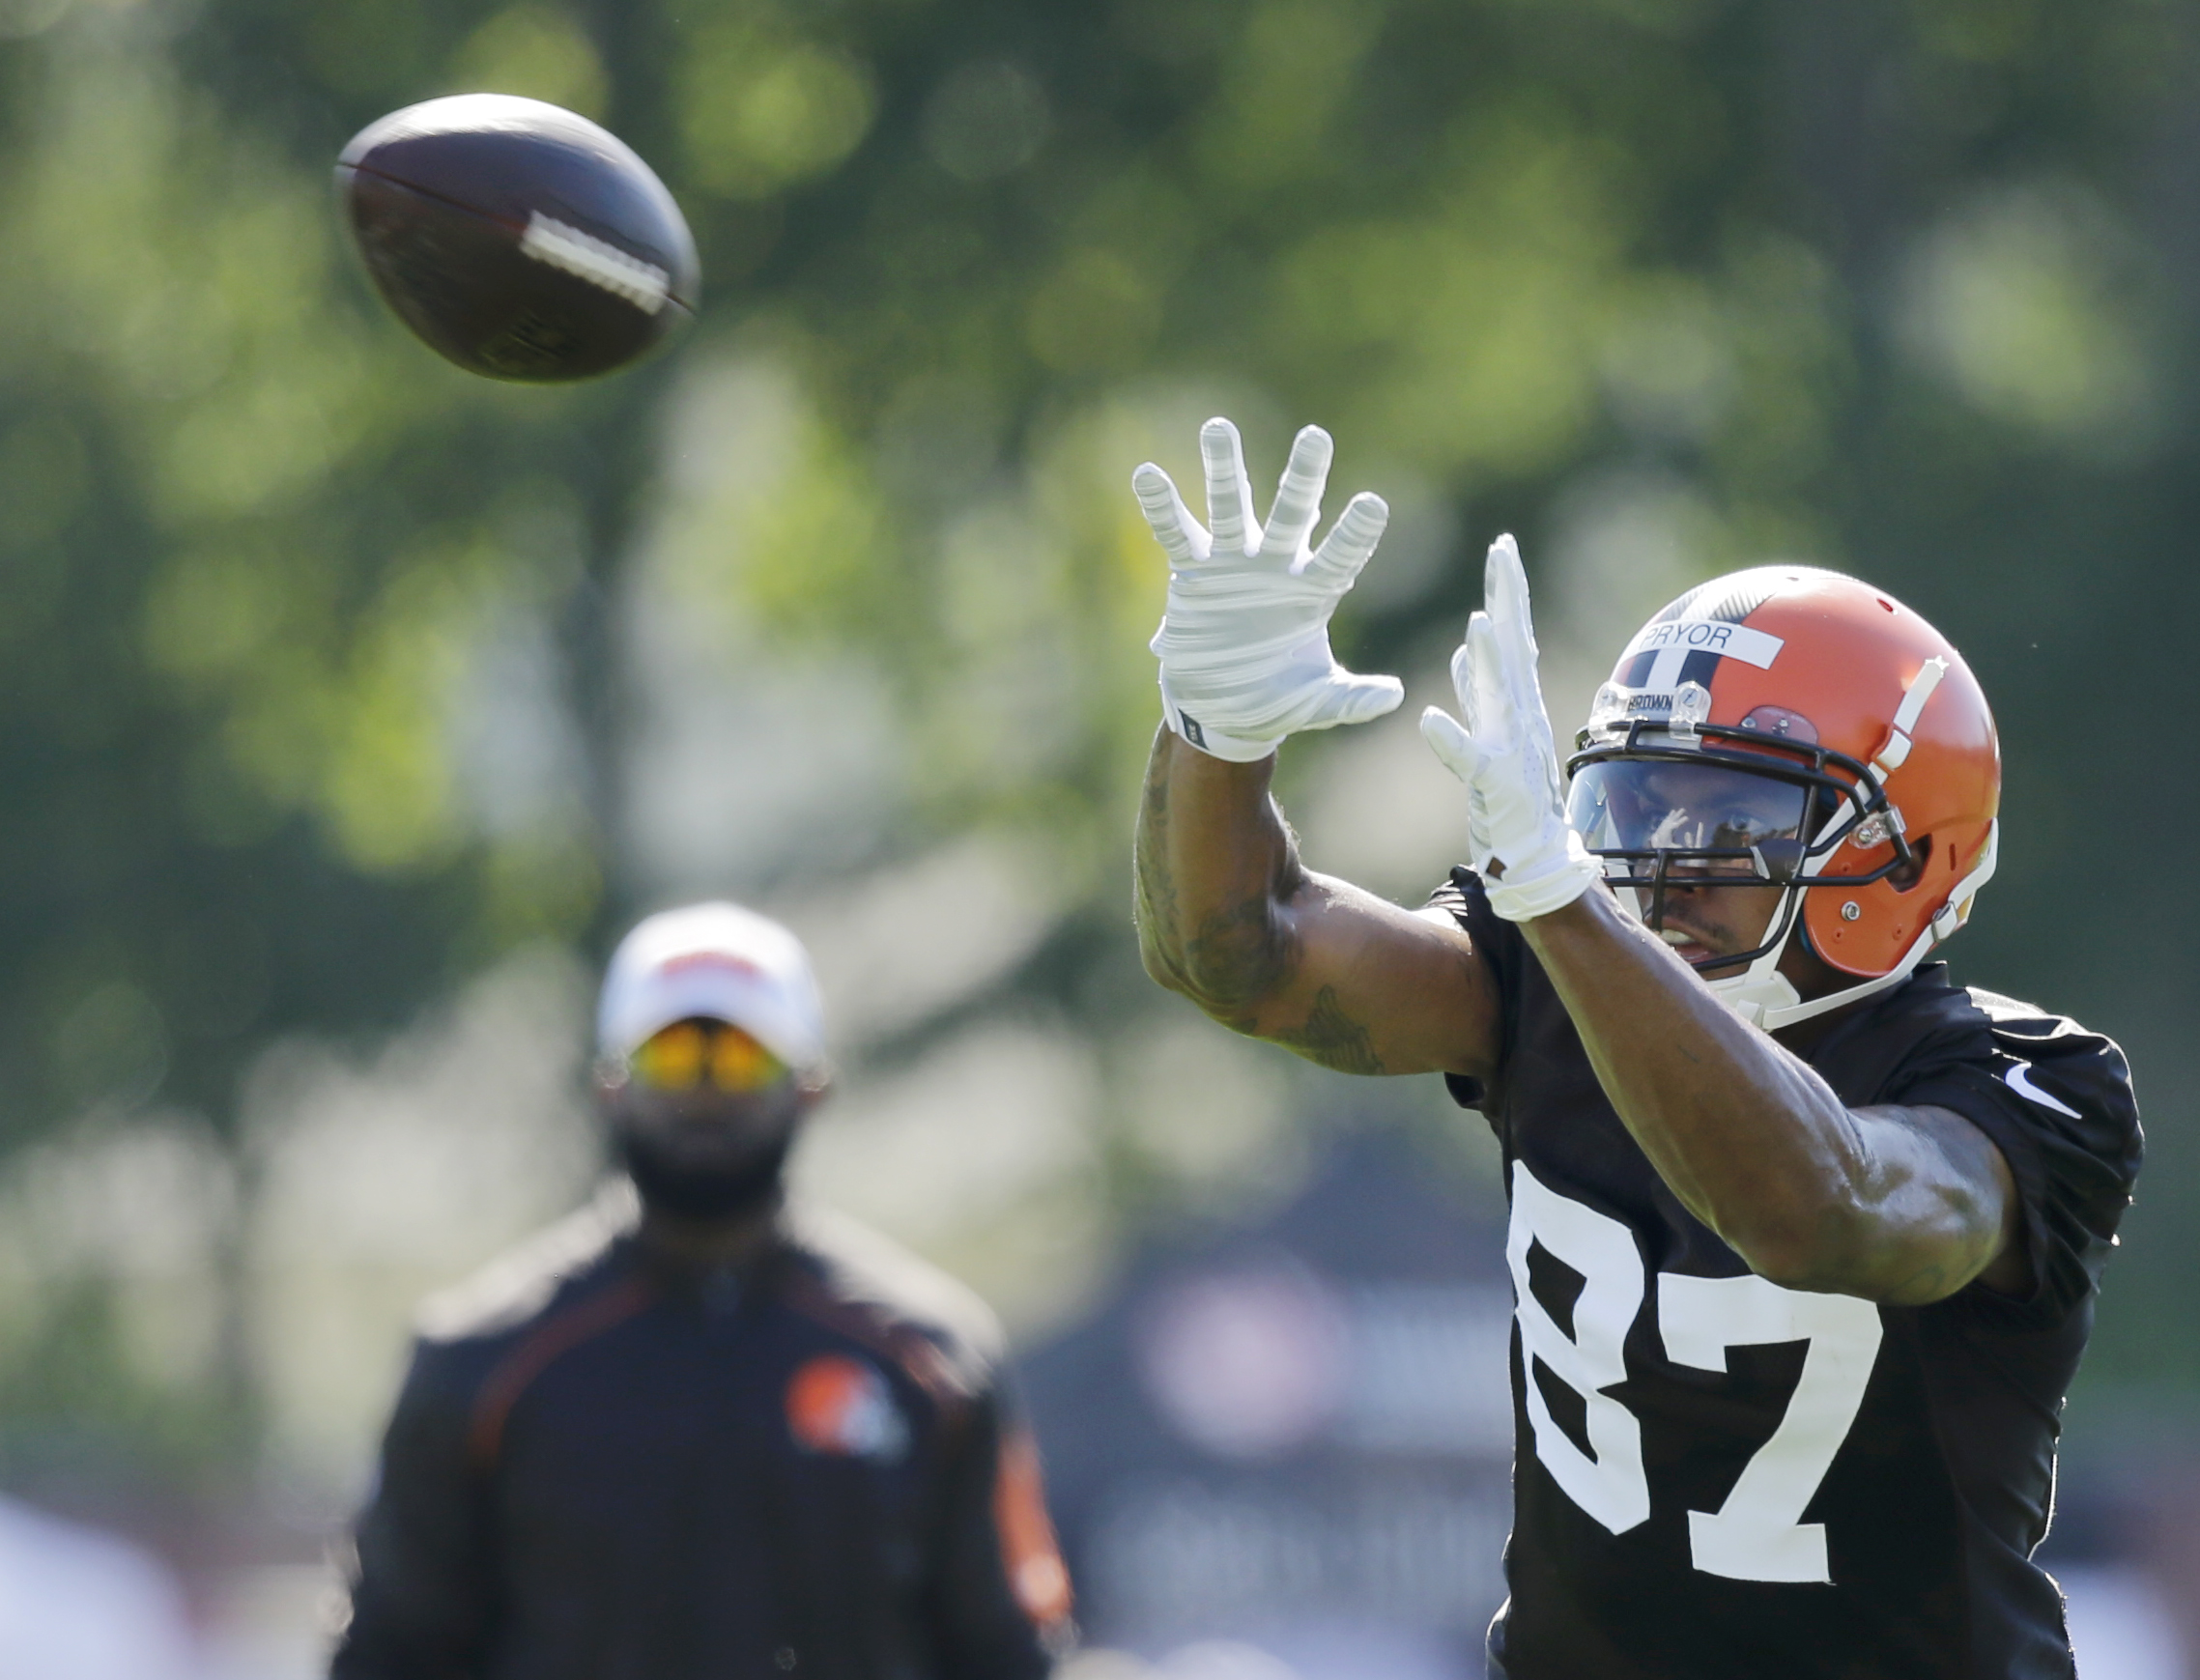 Cleveland Browns wide receiver Terrelle Pryor catches a pass during practice at the NFL football team's training camp Thursday, July 30, 2015, in Berea, Ohio. Pryor has been a quarterback his entire football life, but the gifted athlete is swtiching posit